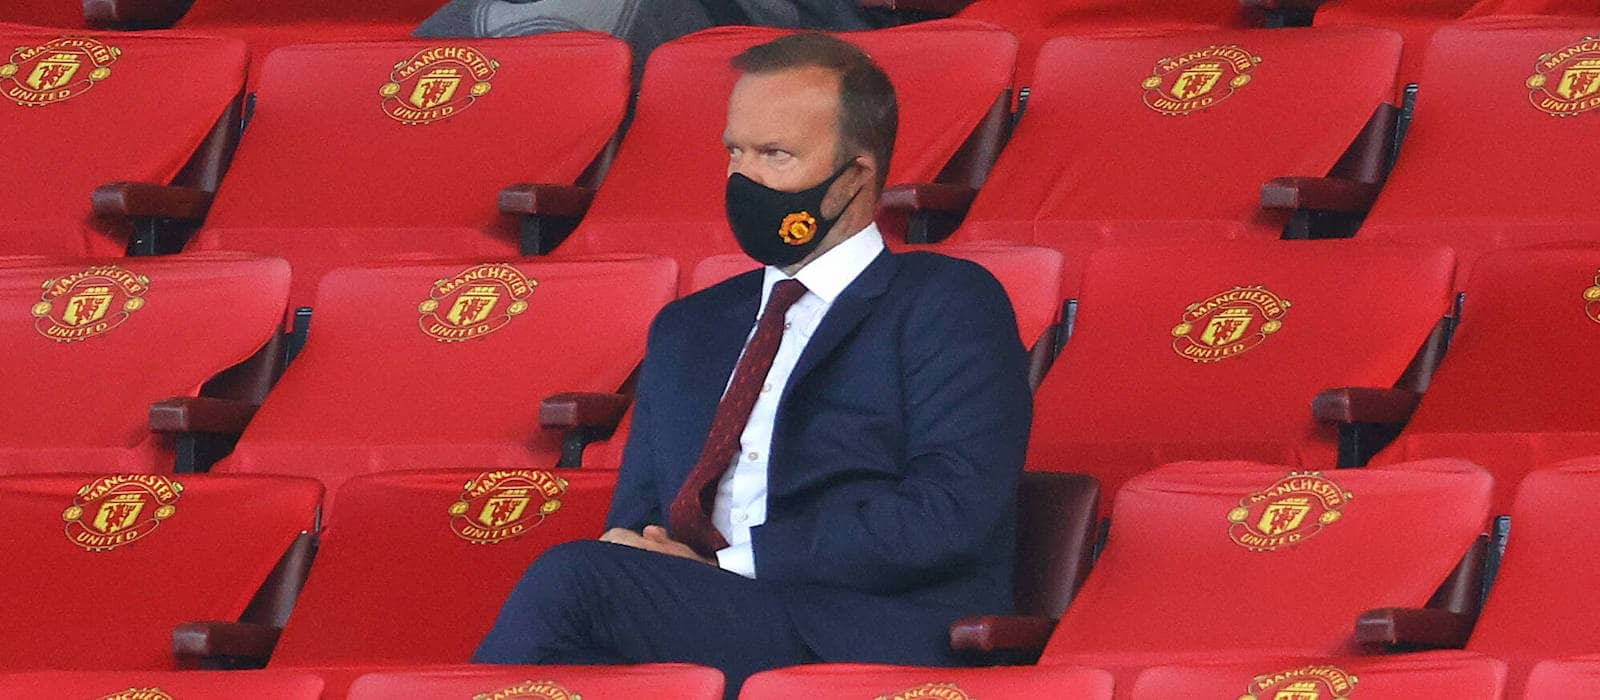 Ed Woodward's claims on transfer spending do not reflect reality